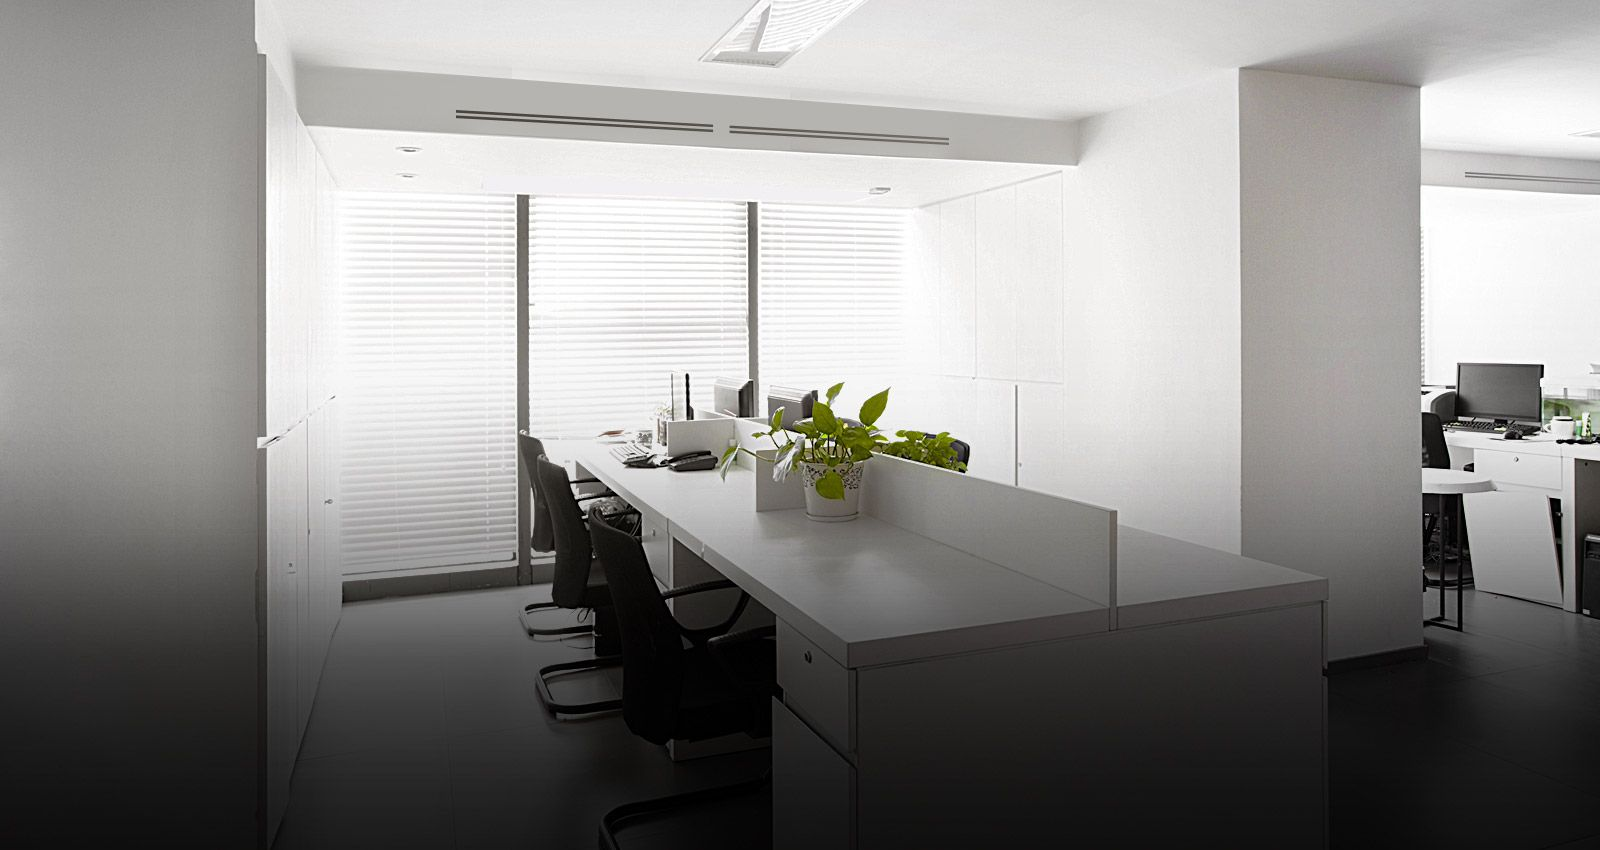 Ceiling Concealed Duct Air Conditioner LG AE Business